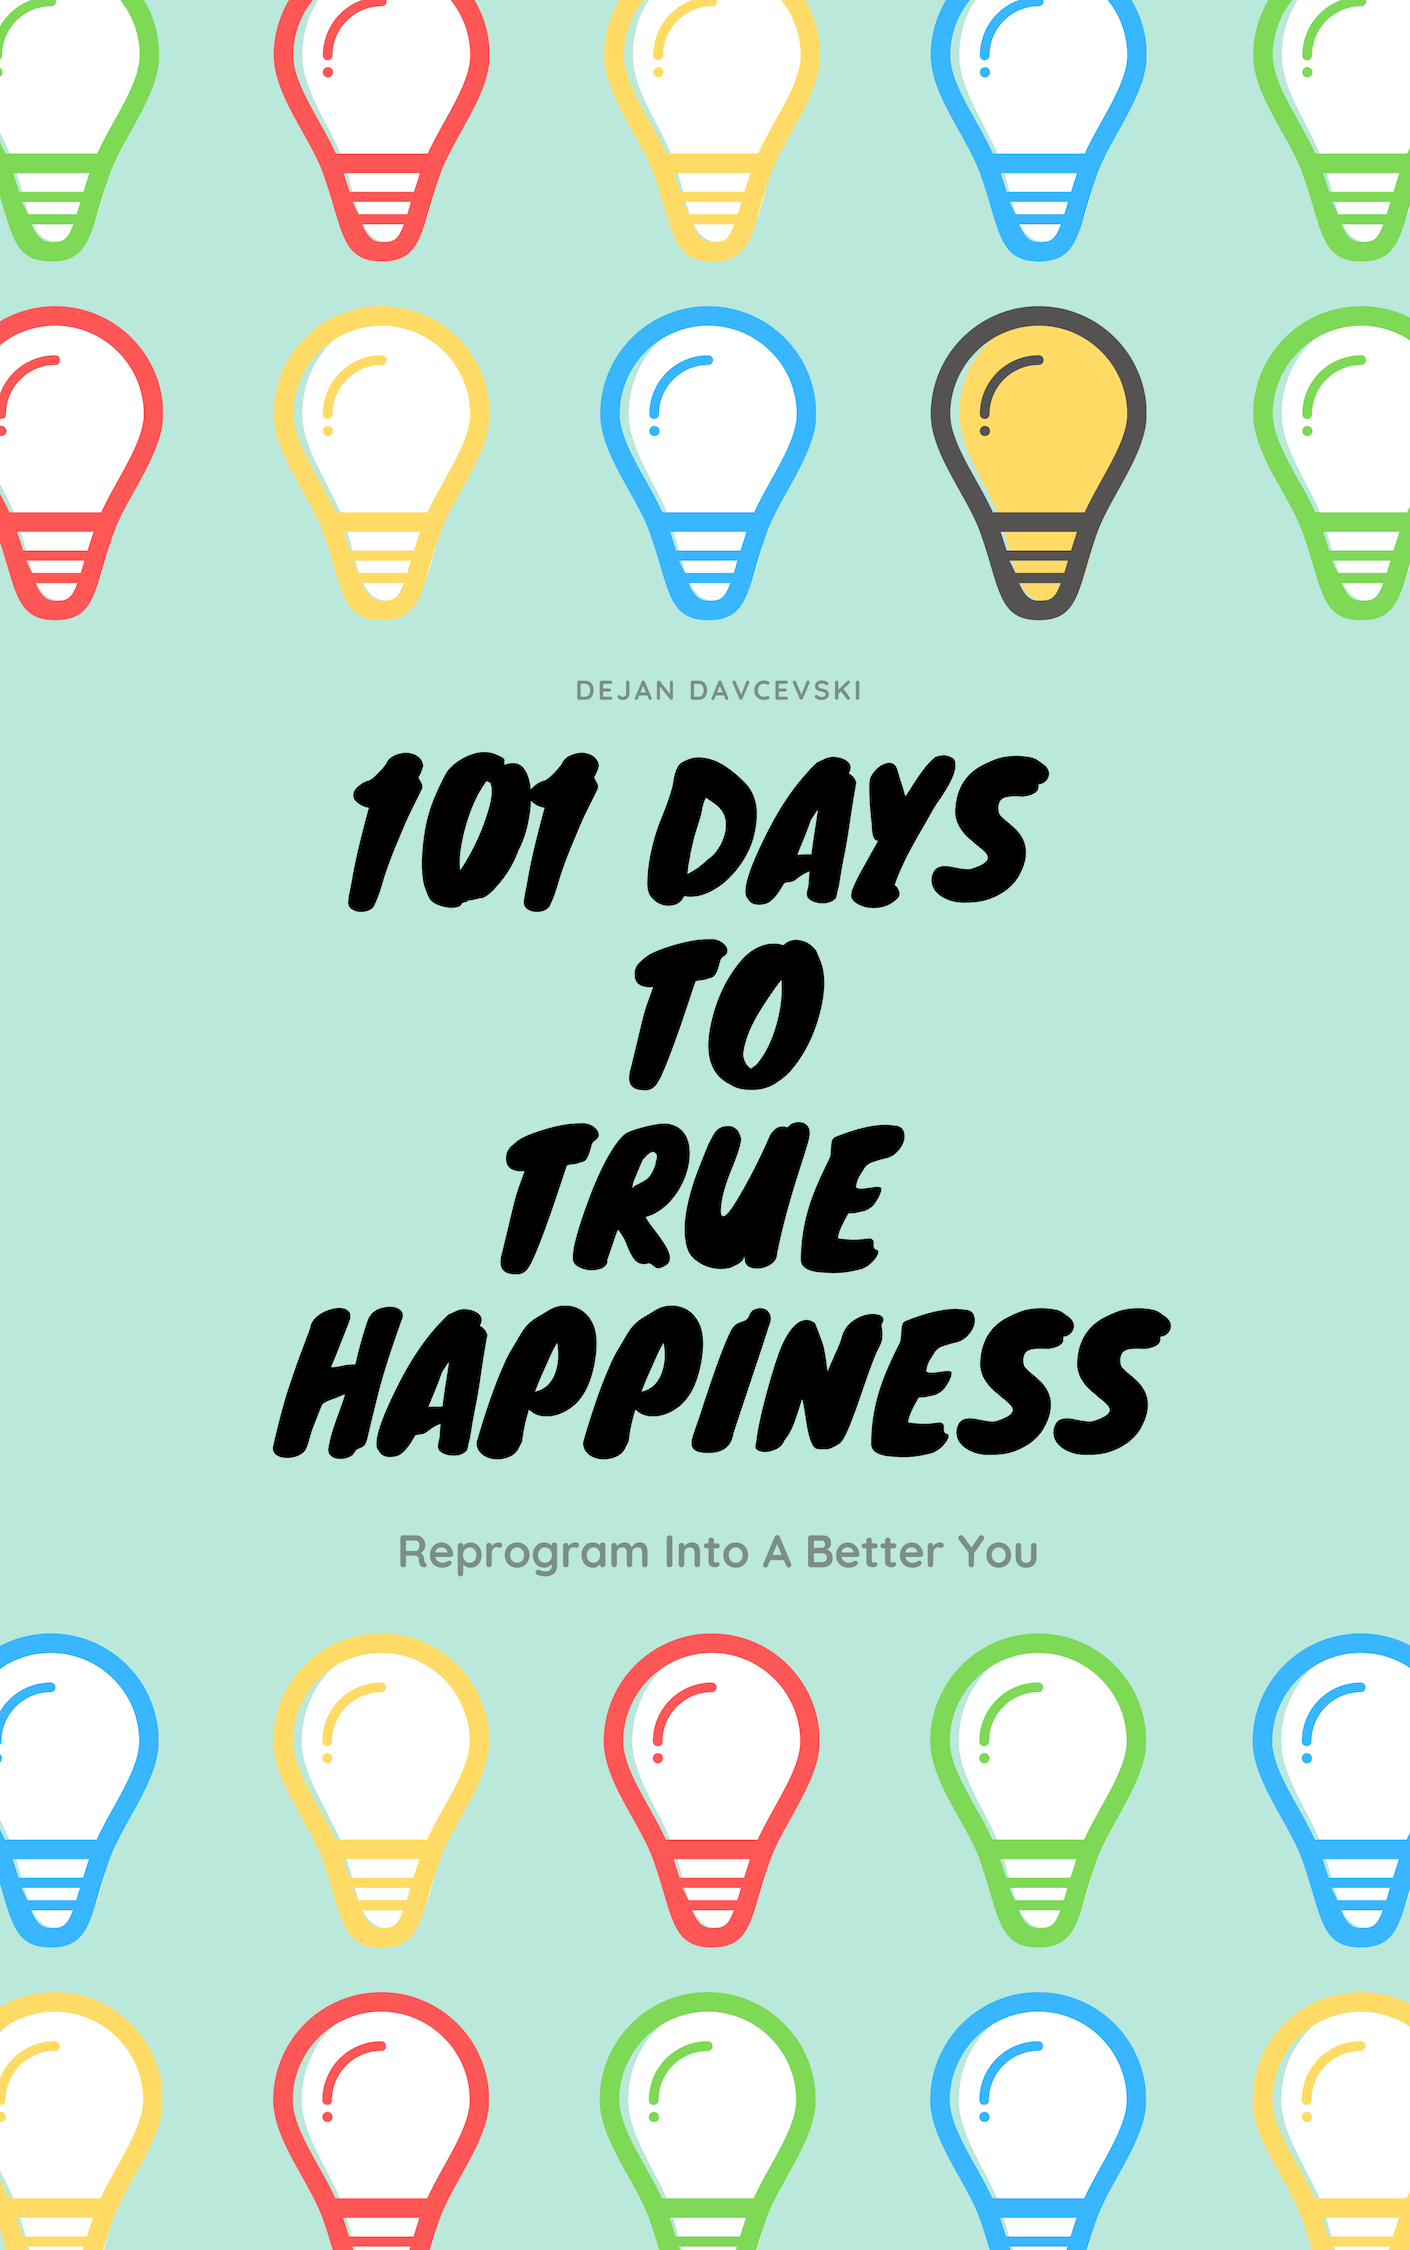 EBOOK 101 Days To True Happiness